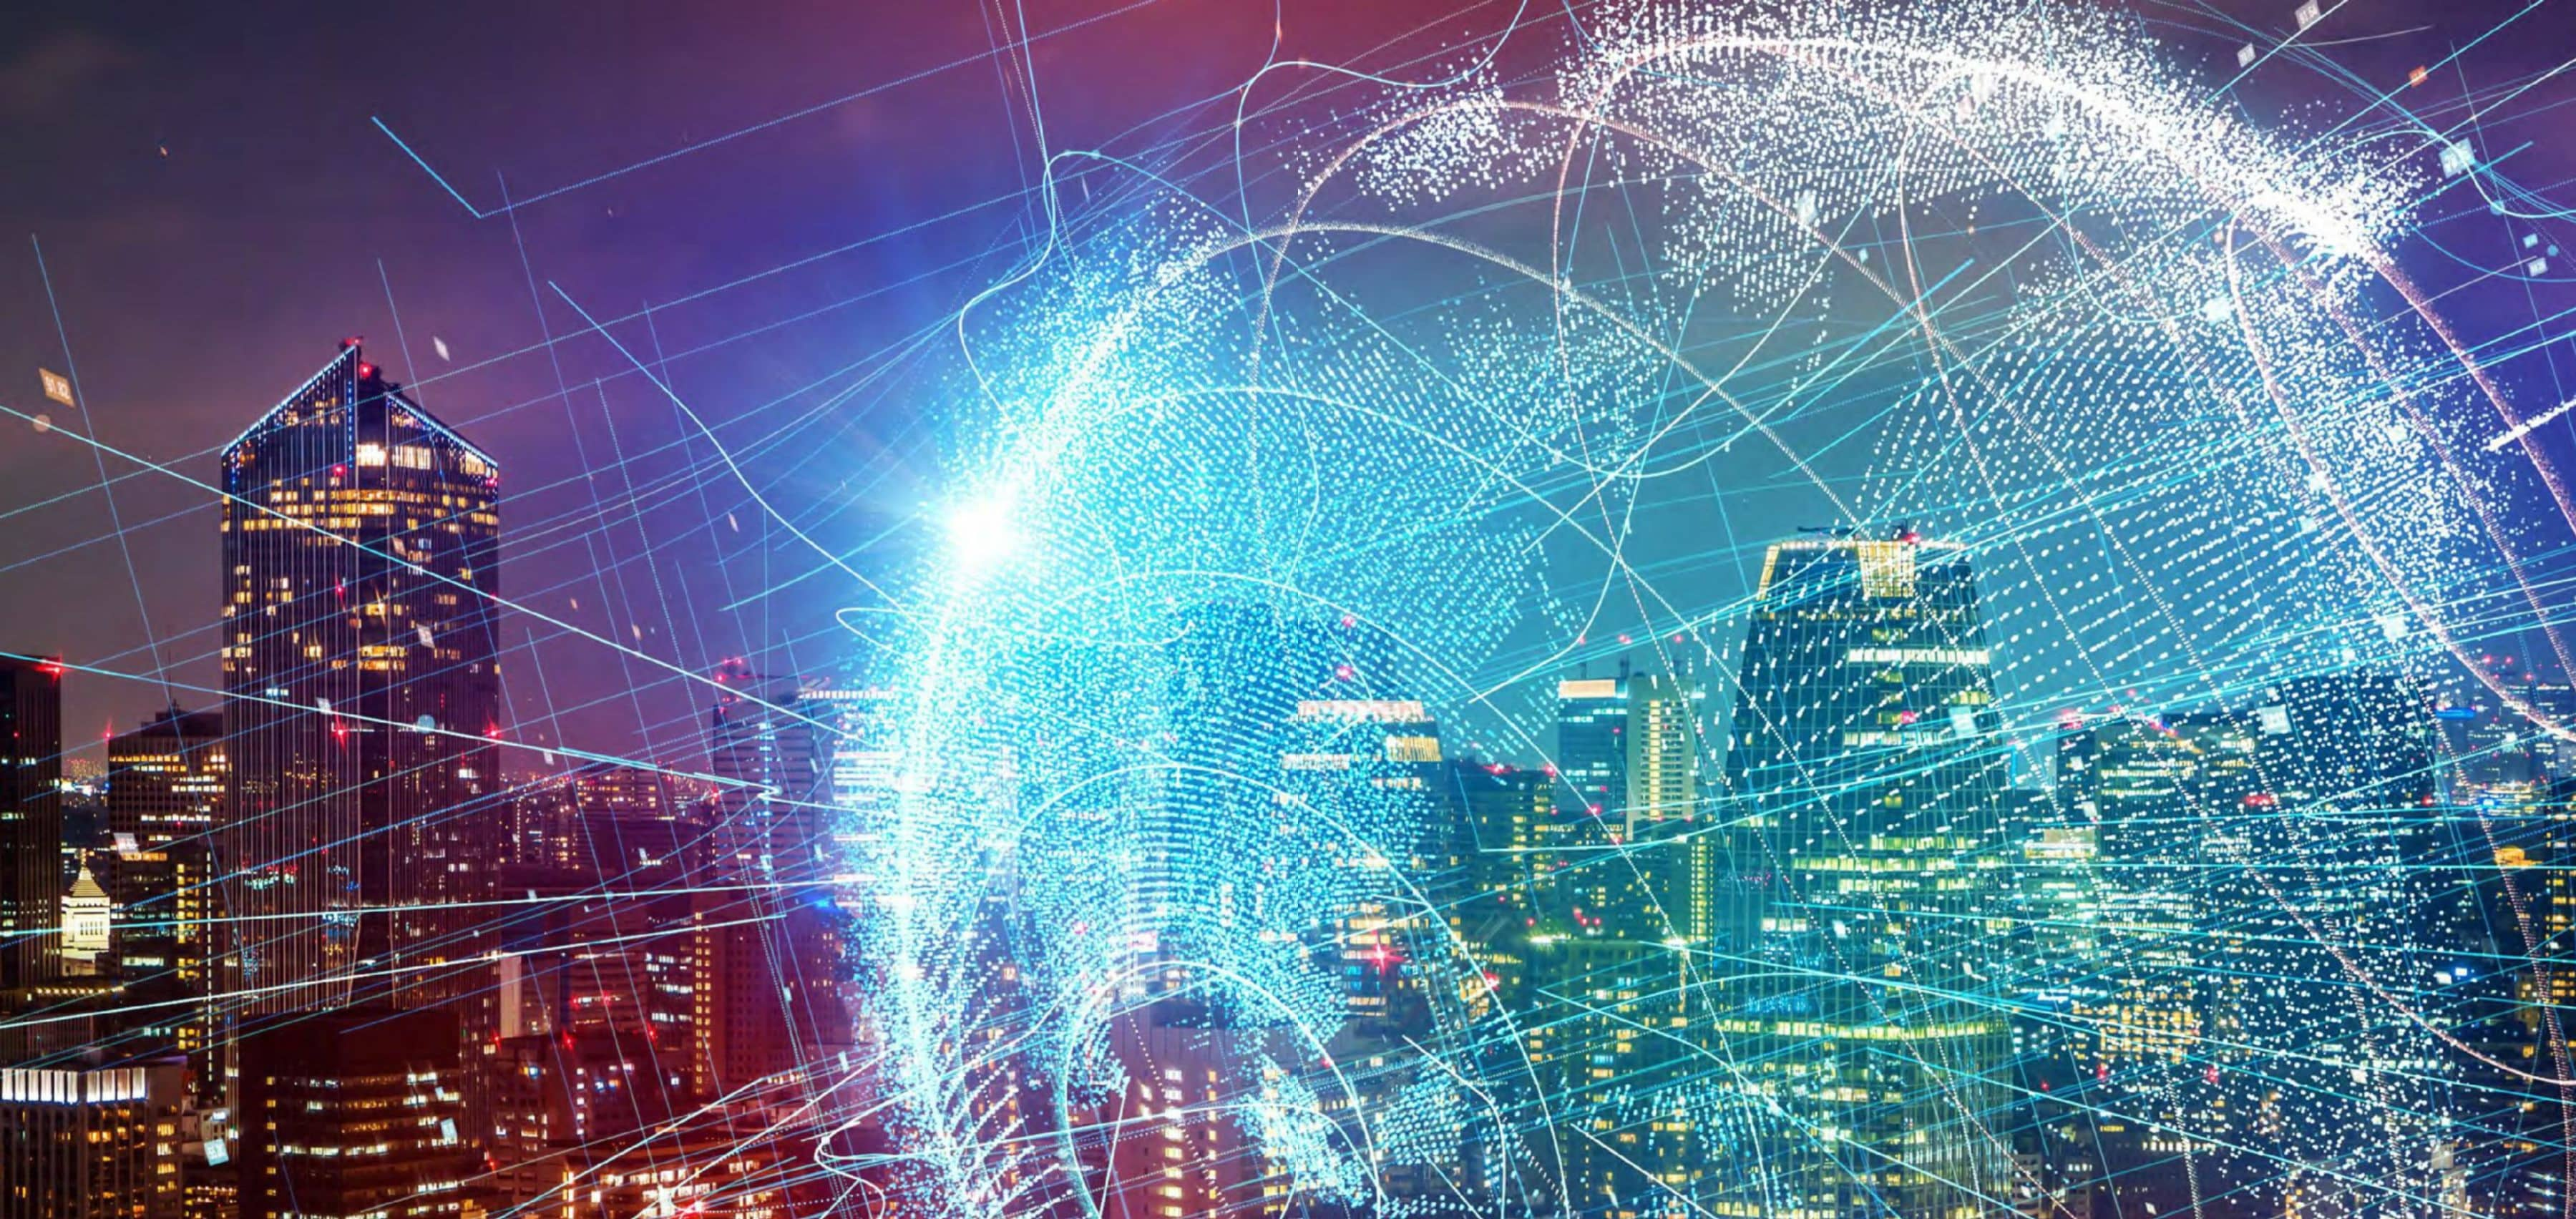 India's Smart Cities: How Far Have We Progressed?